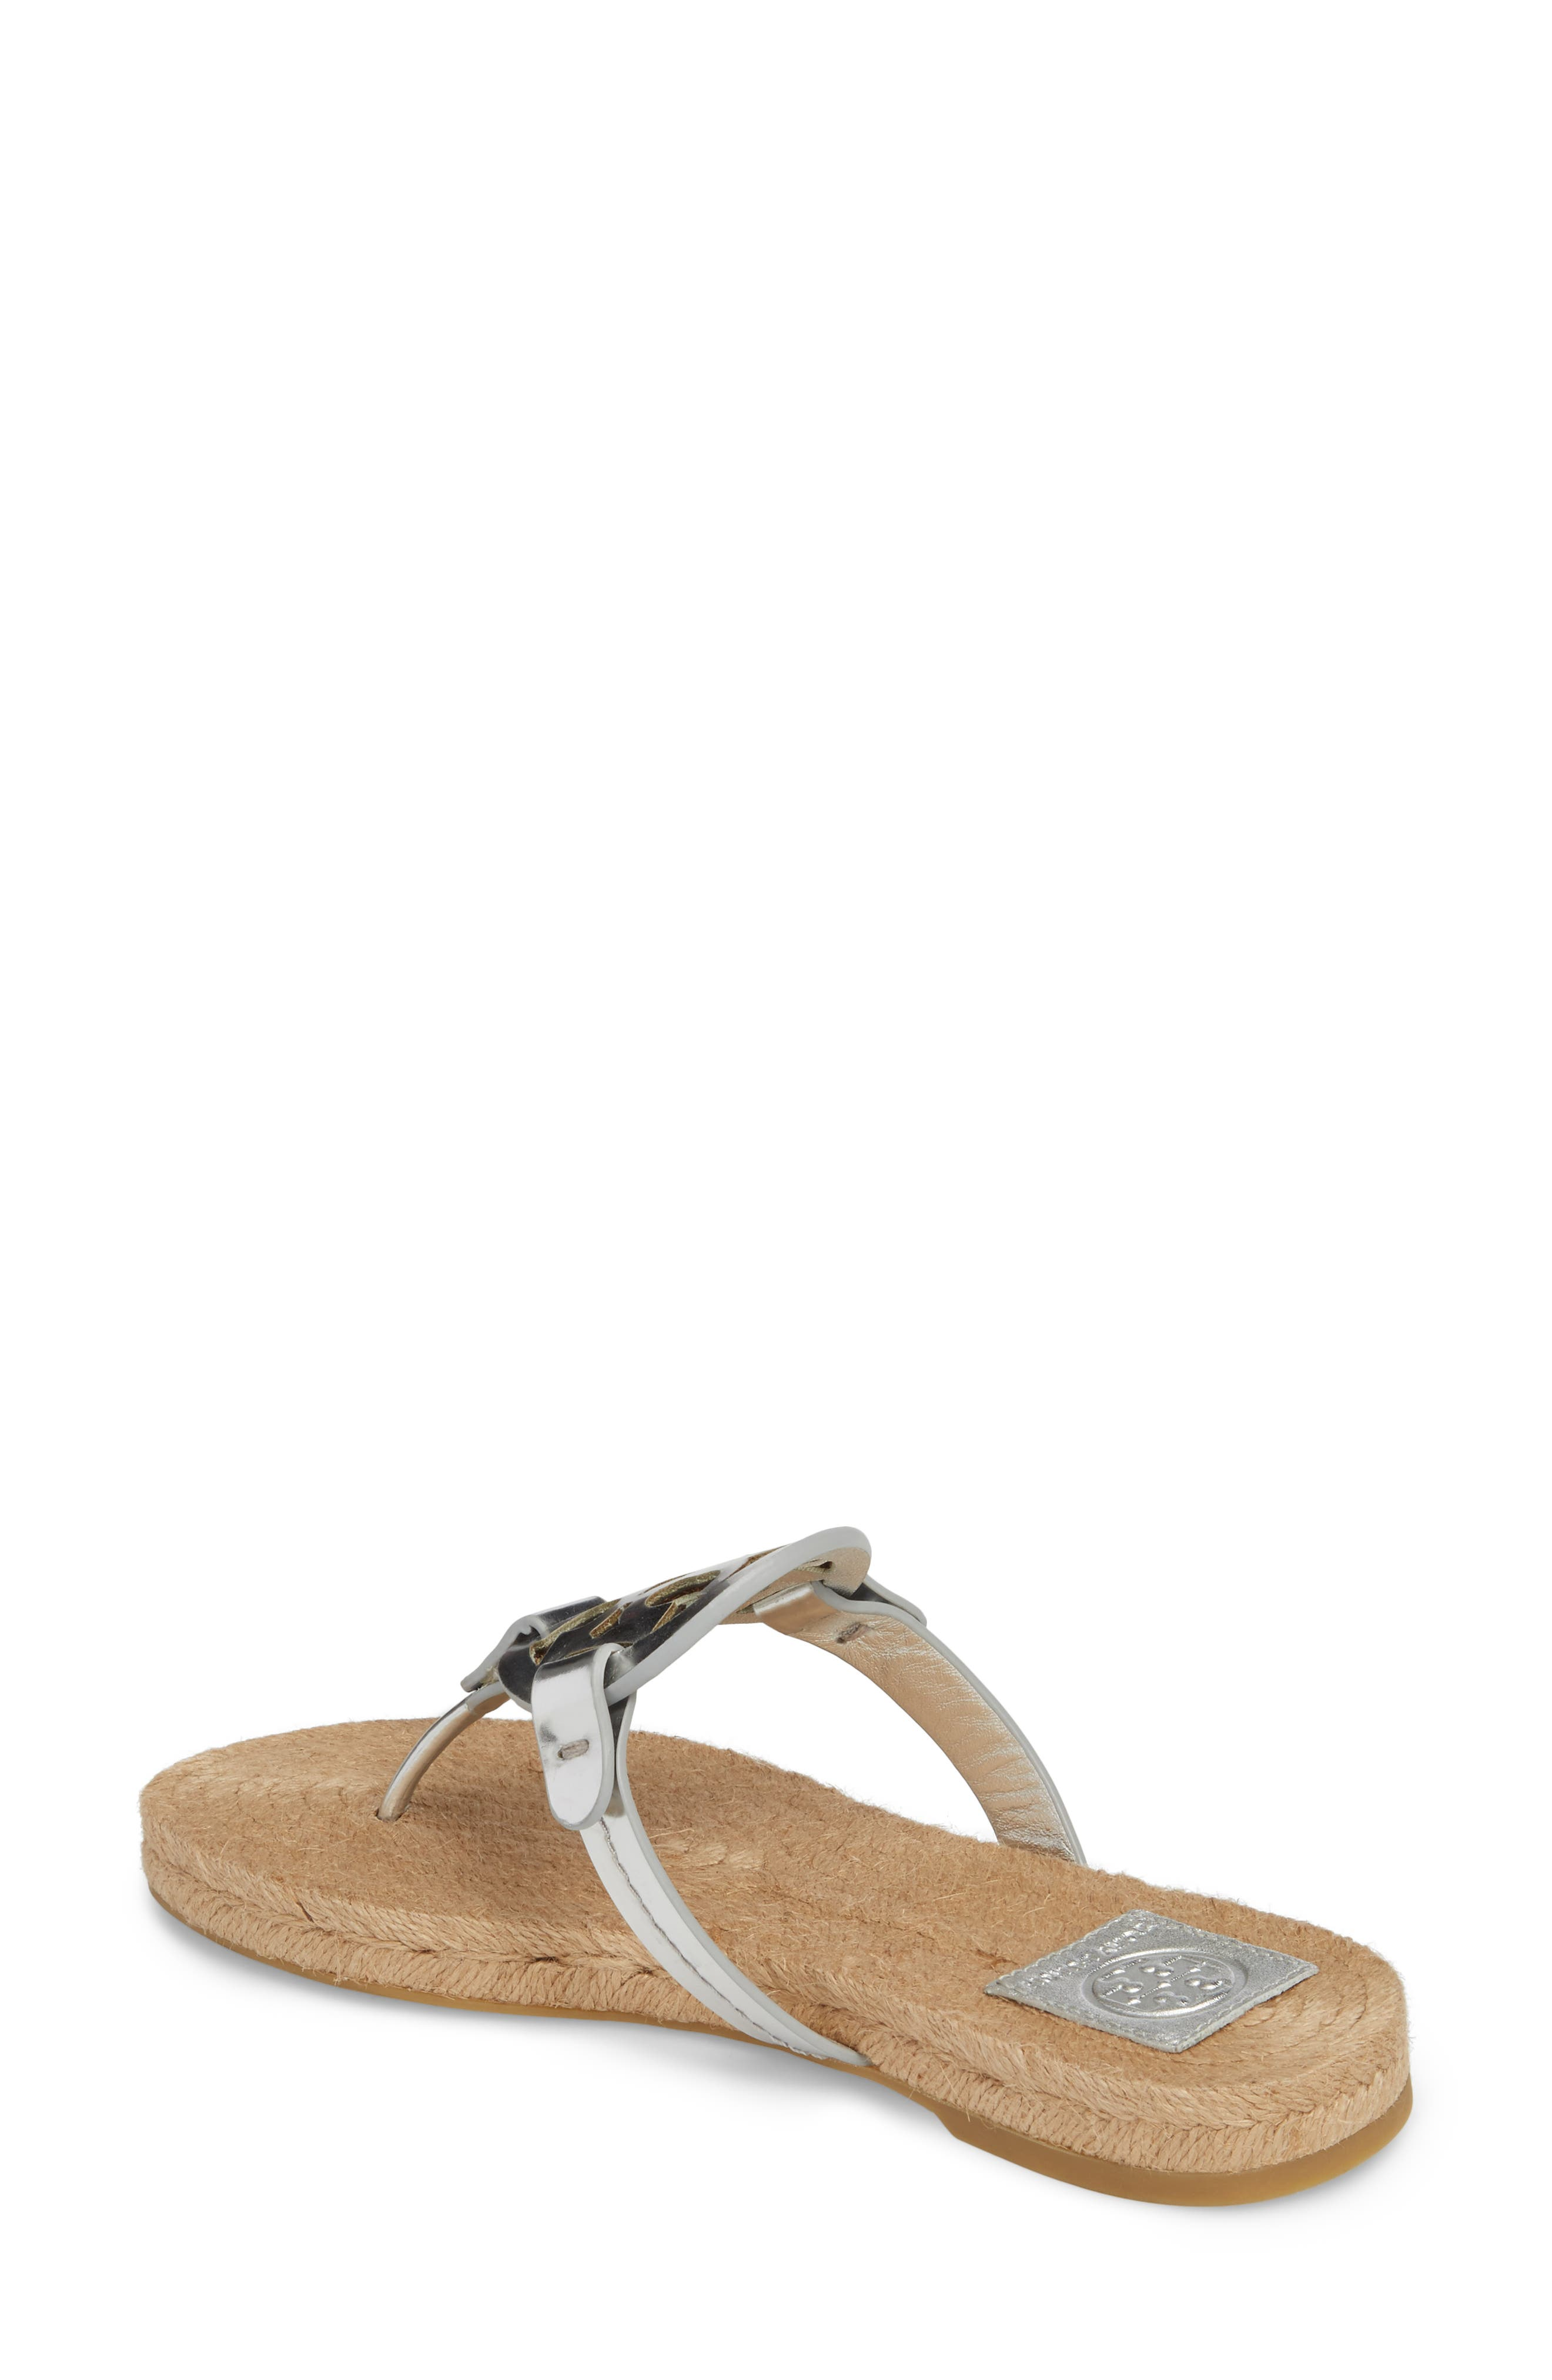 Miller Espadrille Sandal,                             Alternate thumbnail 2, color,                             023